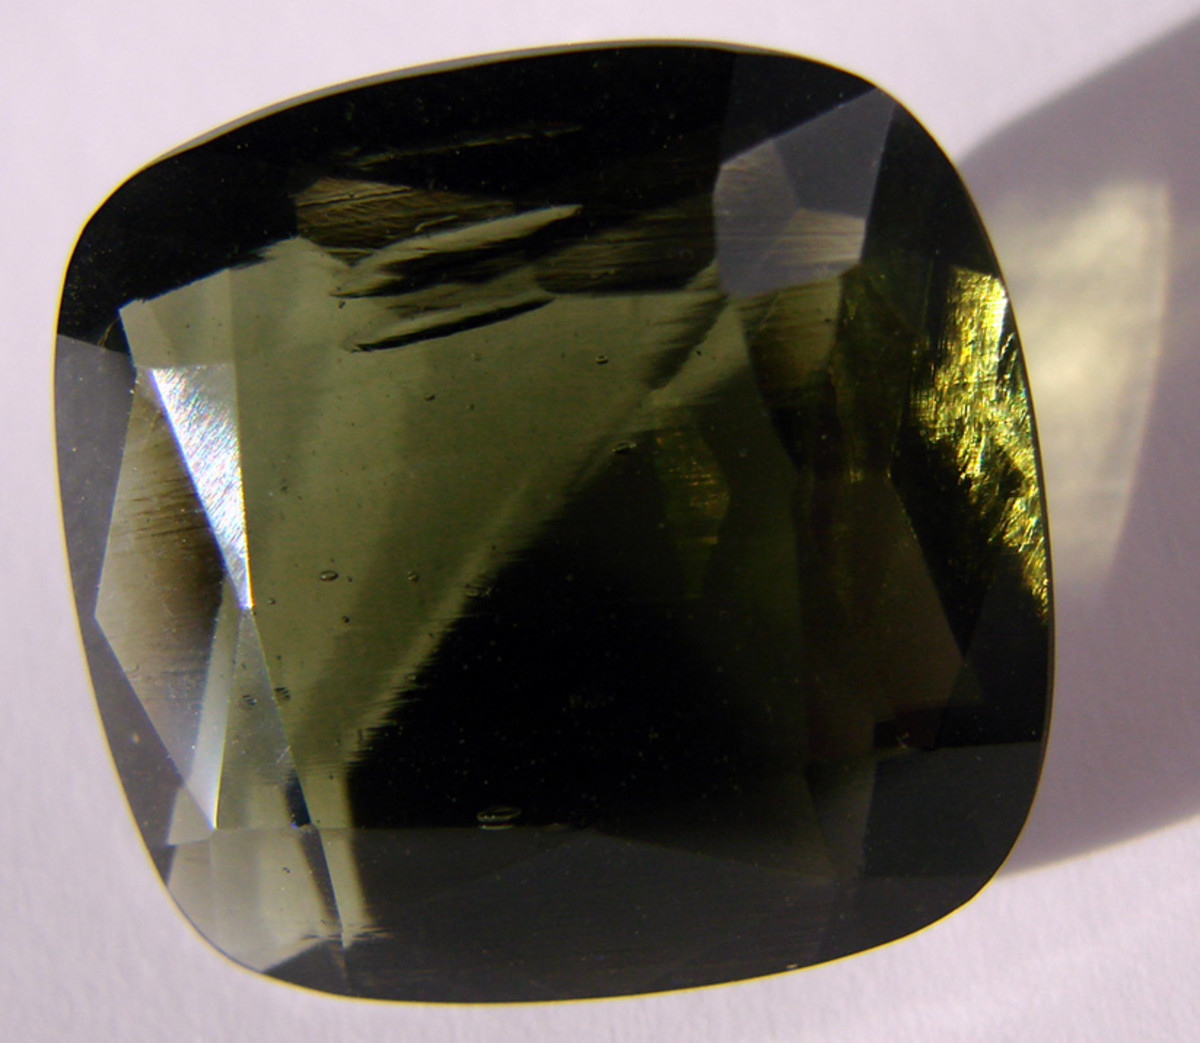 Spiritual and Healing Properties of Moldavite, the Otherworldly Stone